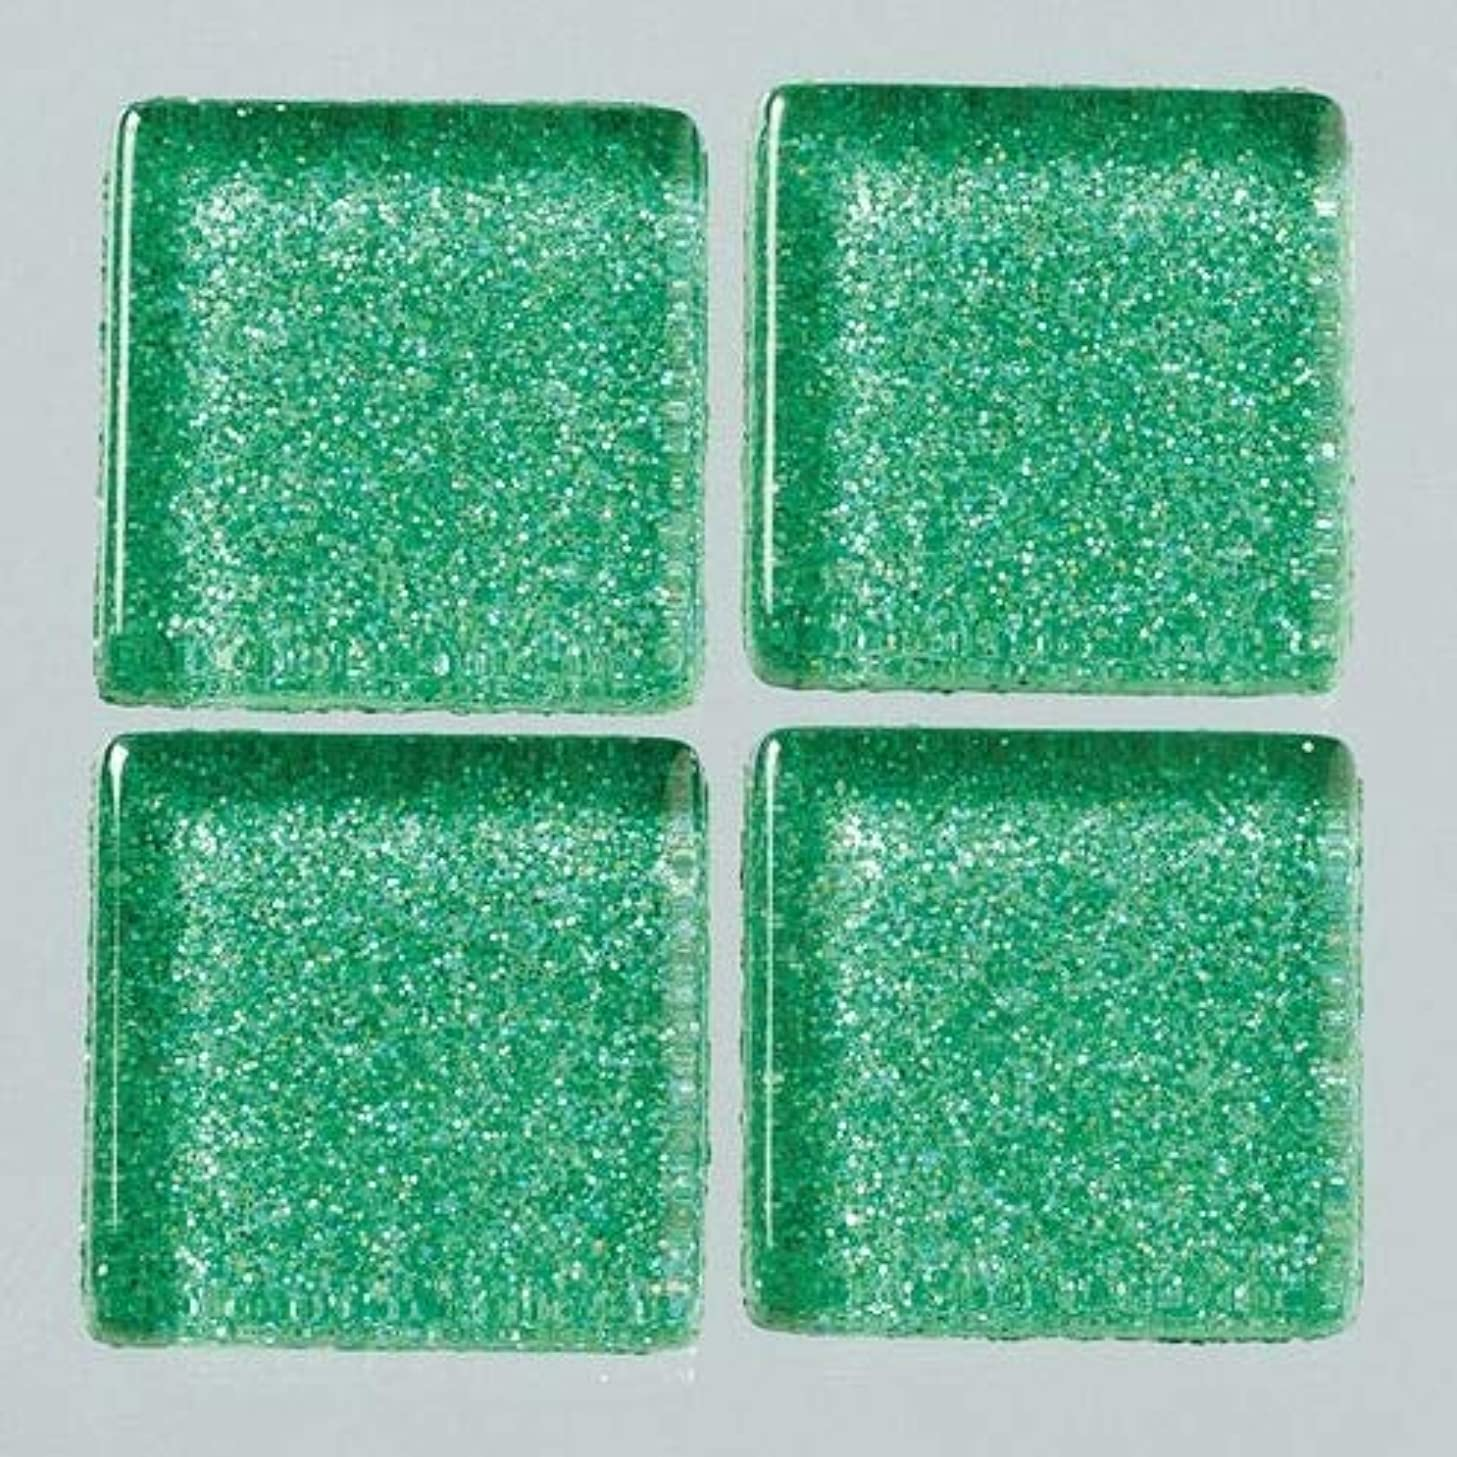 MosaixPro 20 x 20 x 4 mm 200 g 41-Piece Glass Glitter Tiles, Turquoise